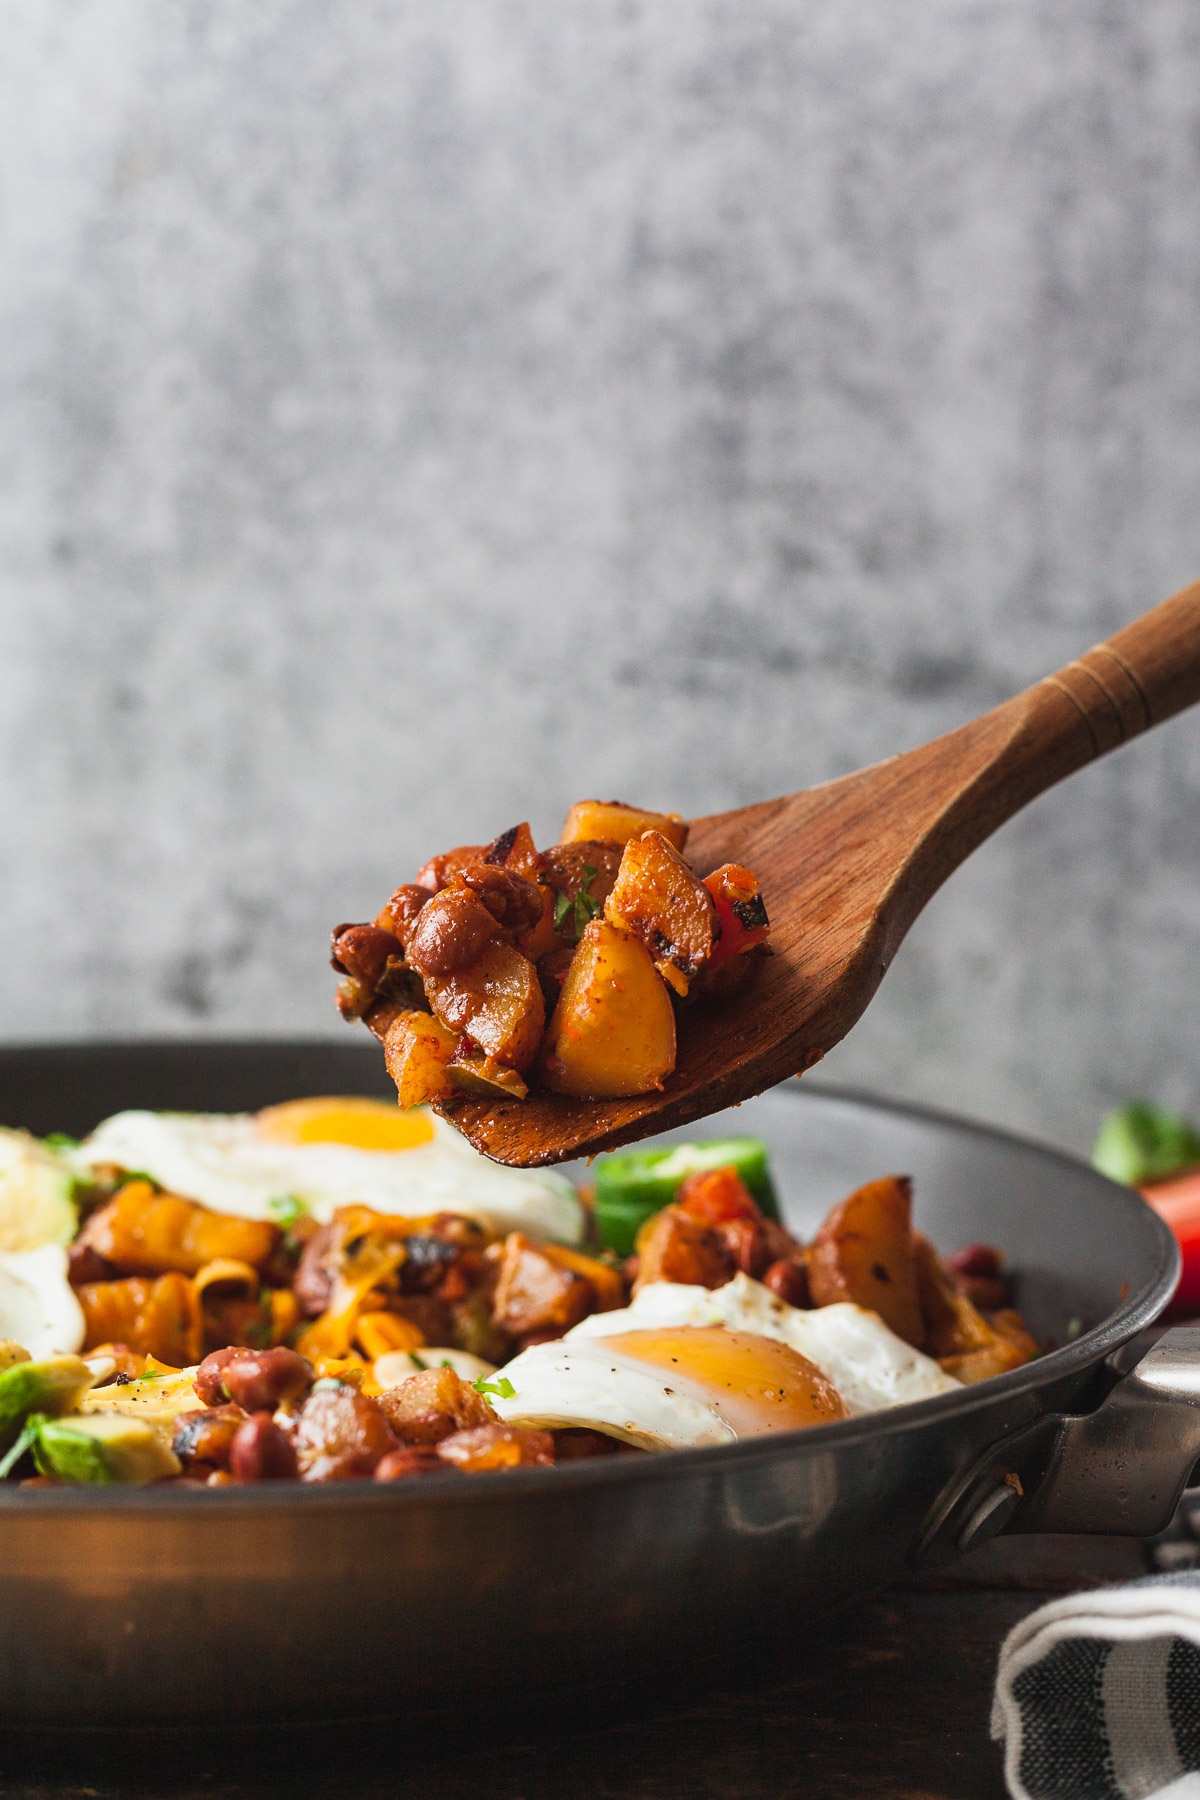 side view image of wooden spoon scooping out southwest veggie breakfast in pan